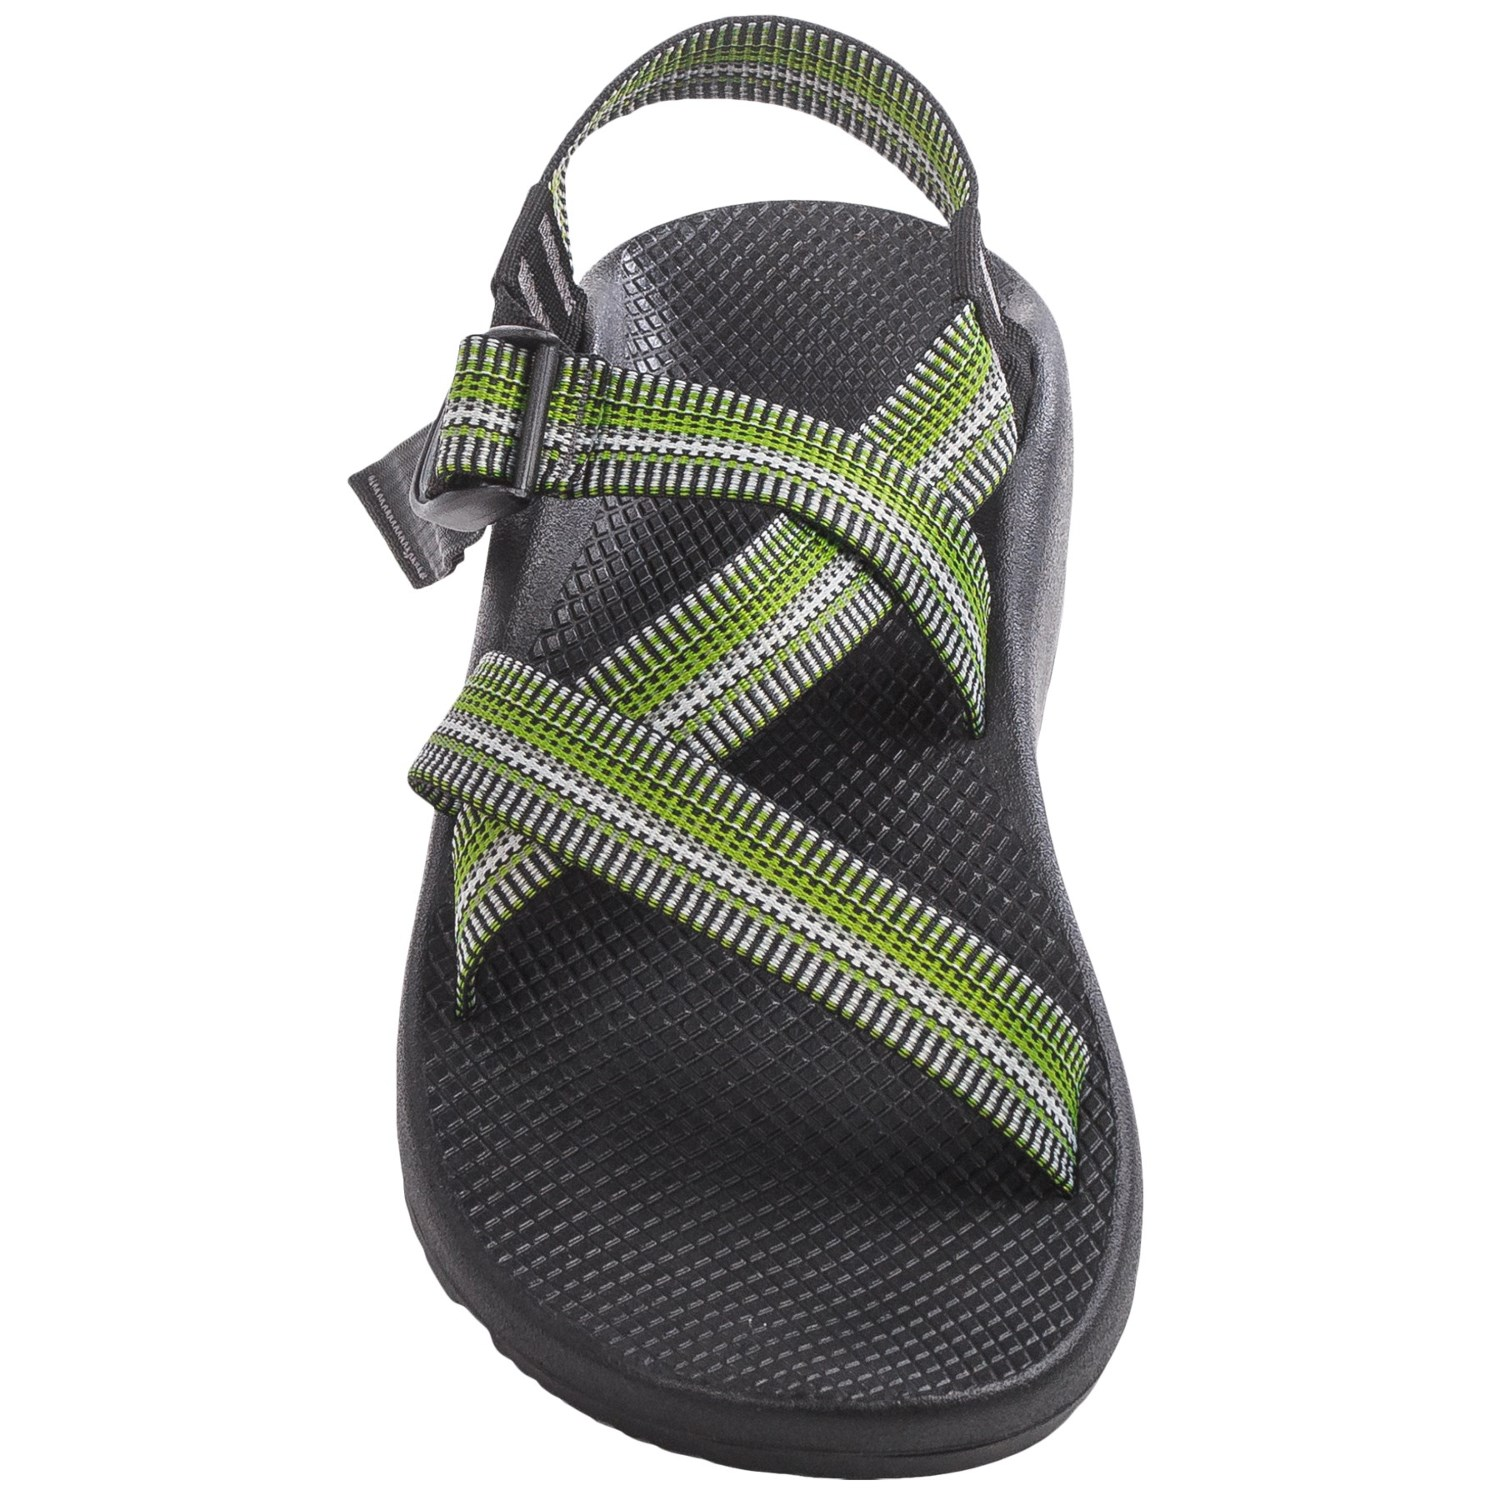 10afc9aaf0a8 Chaco Z 1® Classic Sport Sandals (For Men) - Save 42%